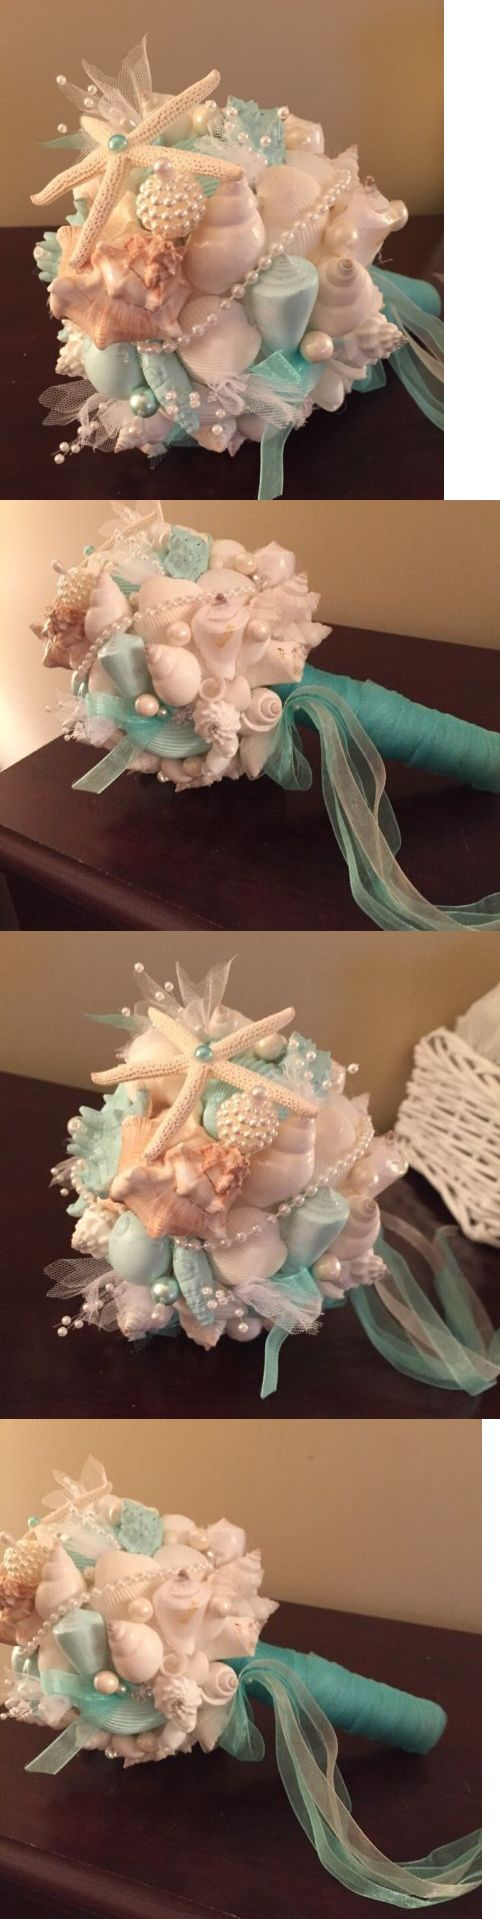 Flowers Petals and Garlands 20938: Xo Bouquets Small Sea Shell Bouquets -> BUY IT NOW ONLY: $45 on eBay!